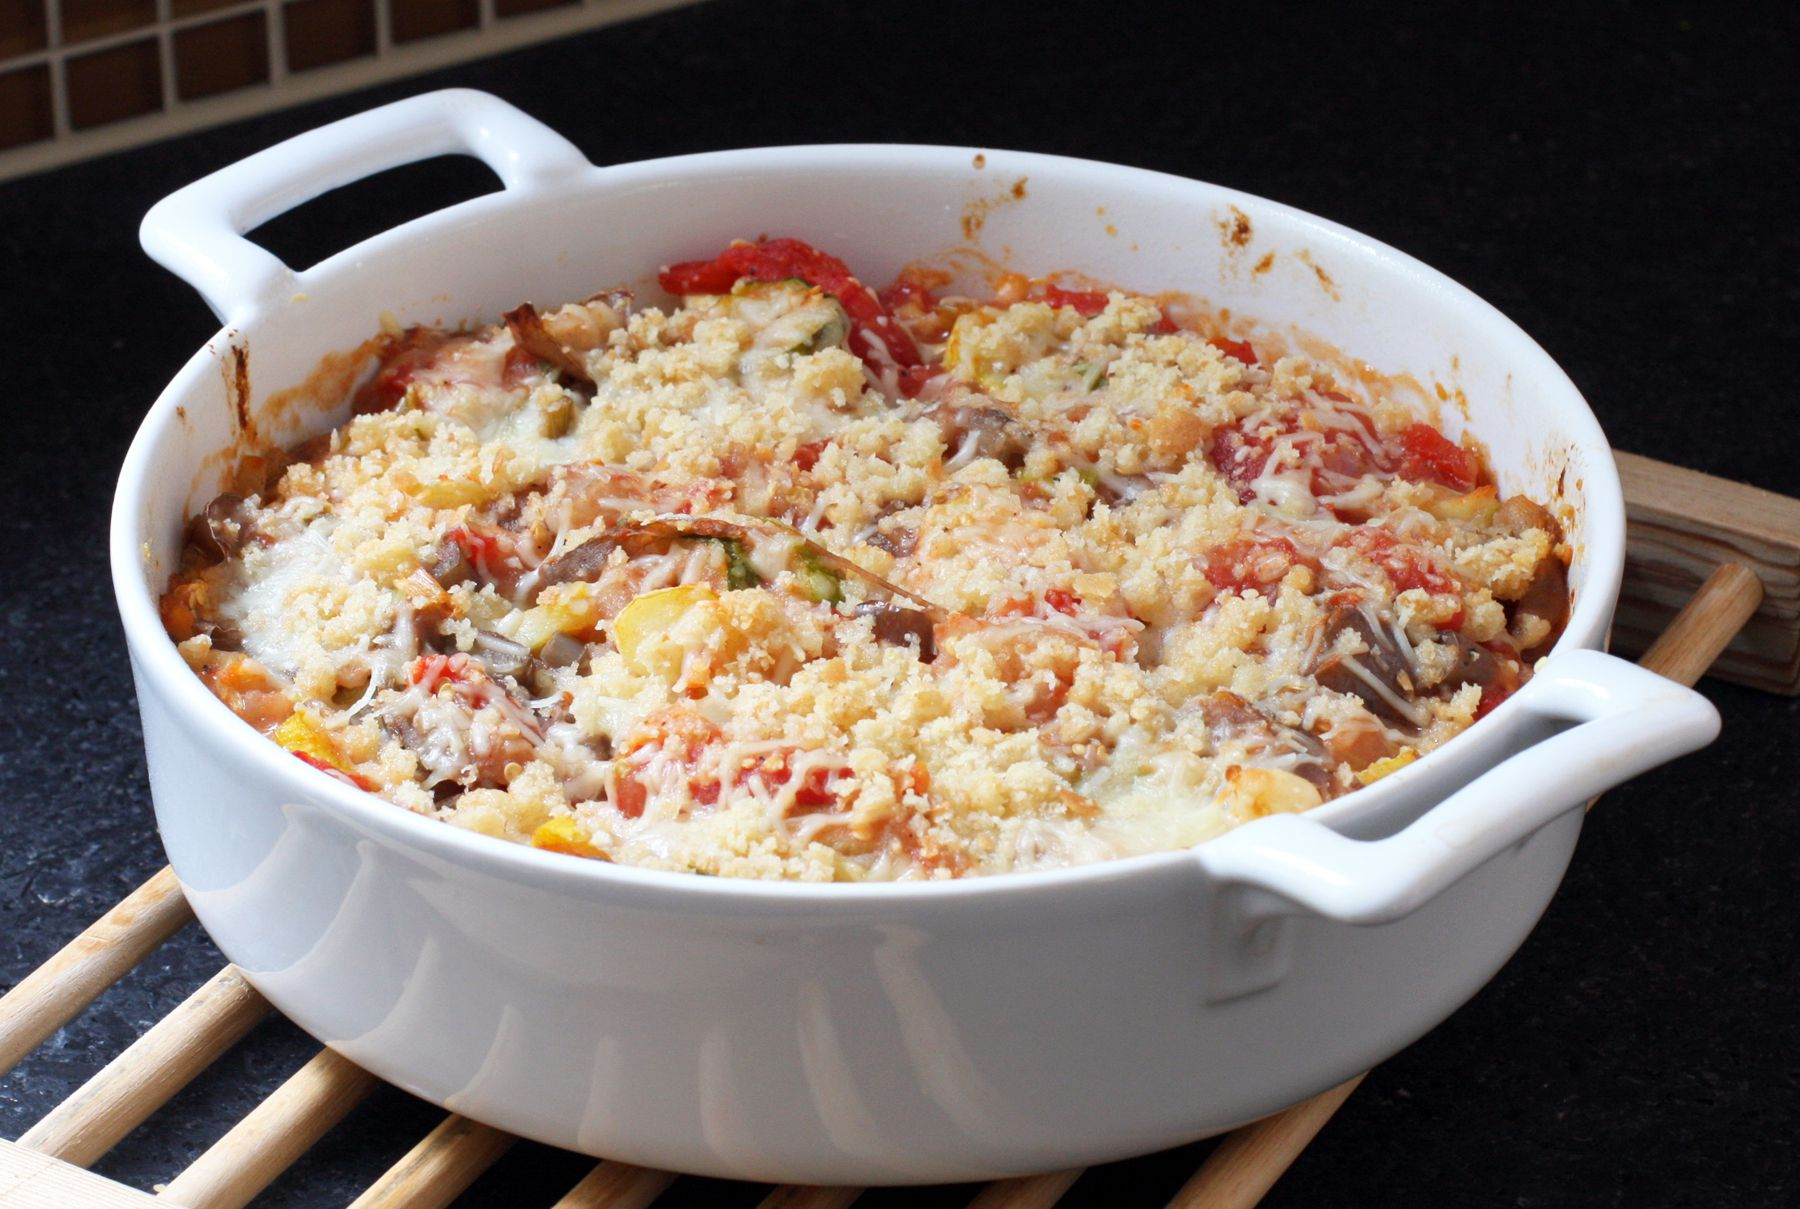 Family-Pleasing Eggplant and Zucchini Casserole With Cheddar Cheese